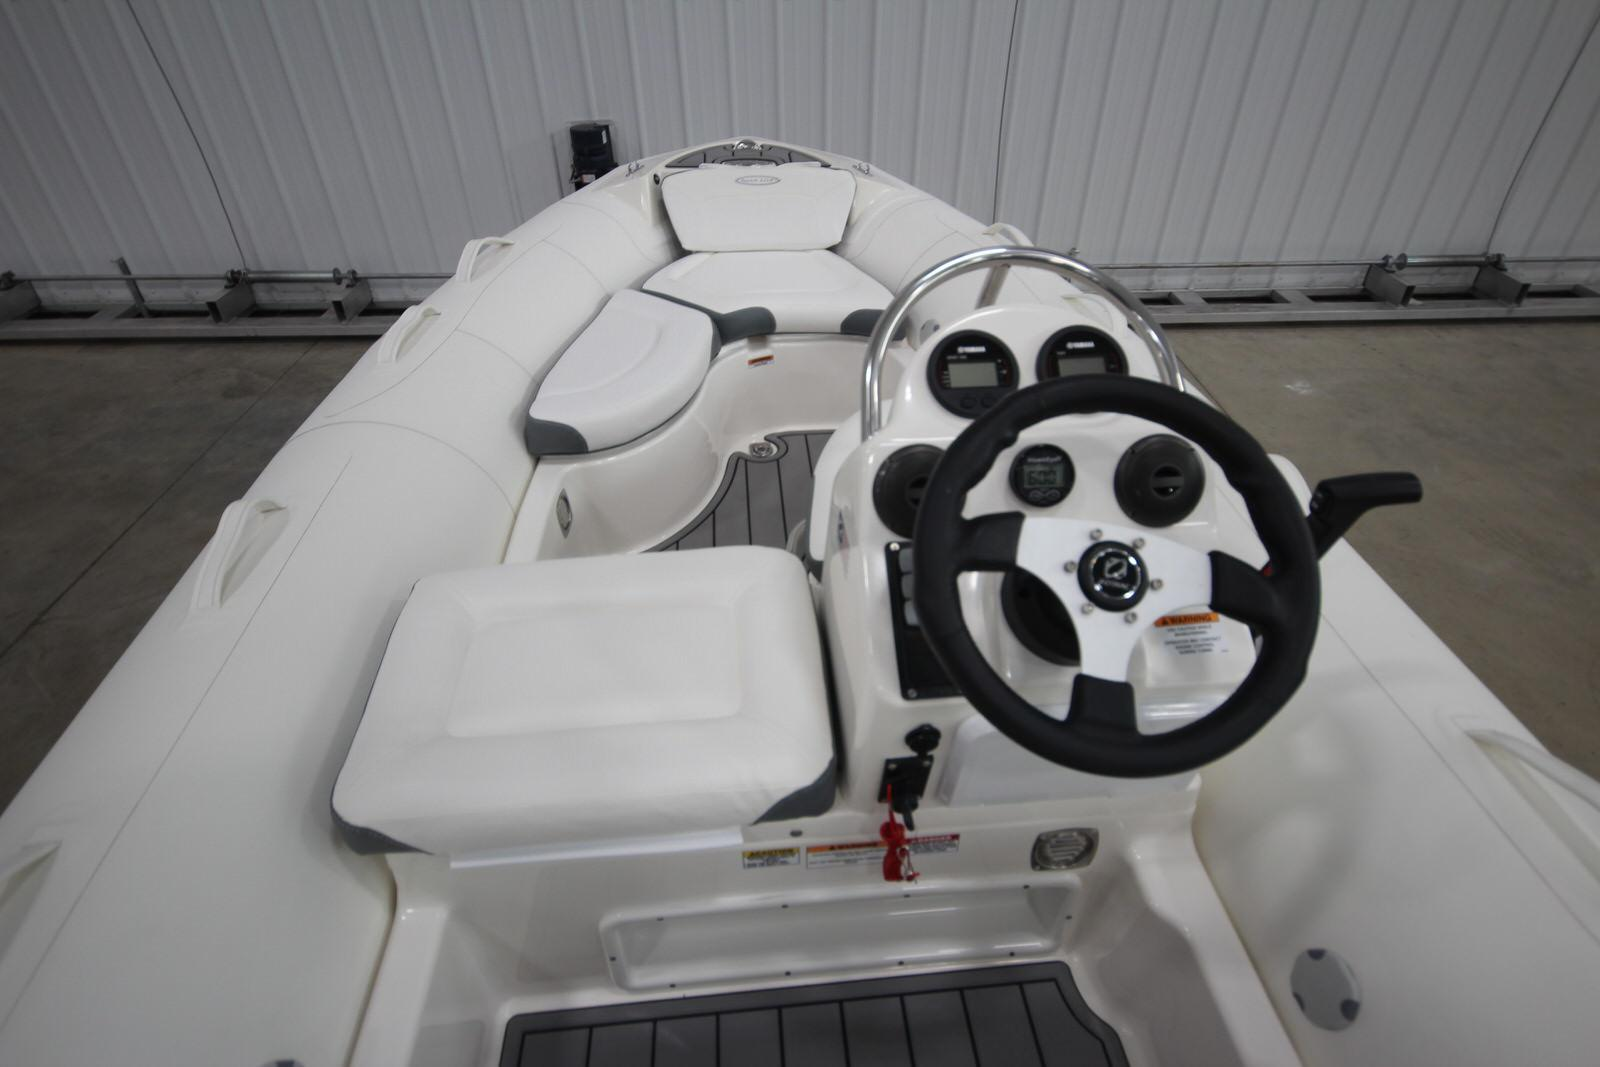 2022 Zodiac Yachtline 440 Deluxe NEO GL Edition 60hp On Order, Image 14